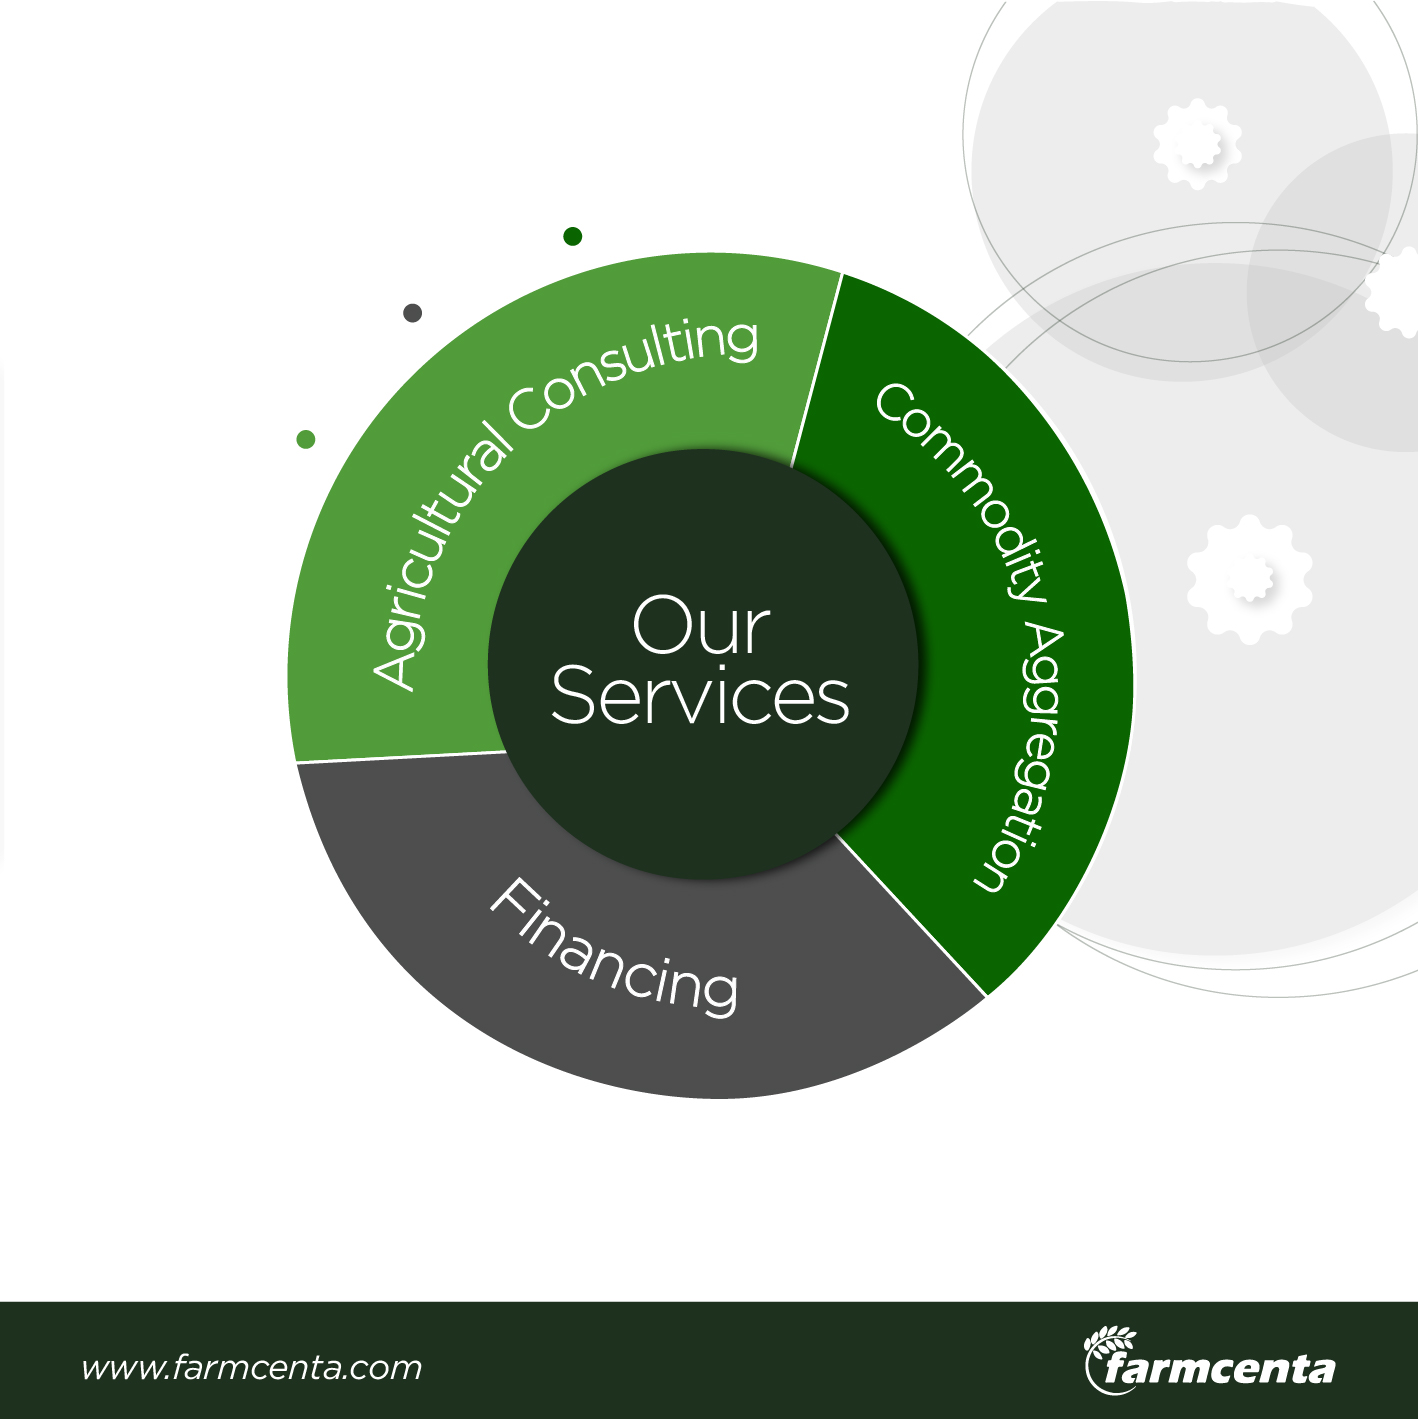 Agricultural Consultancy: Our new service